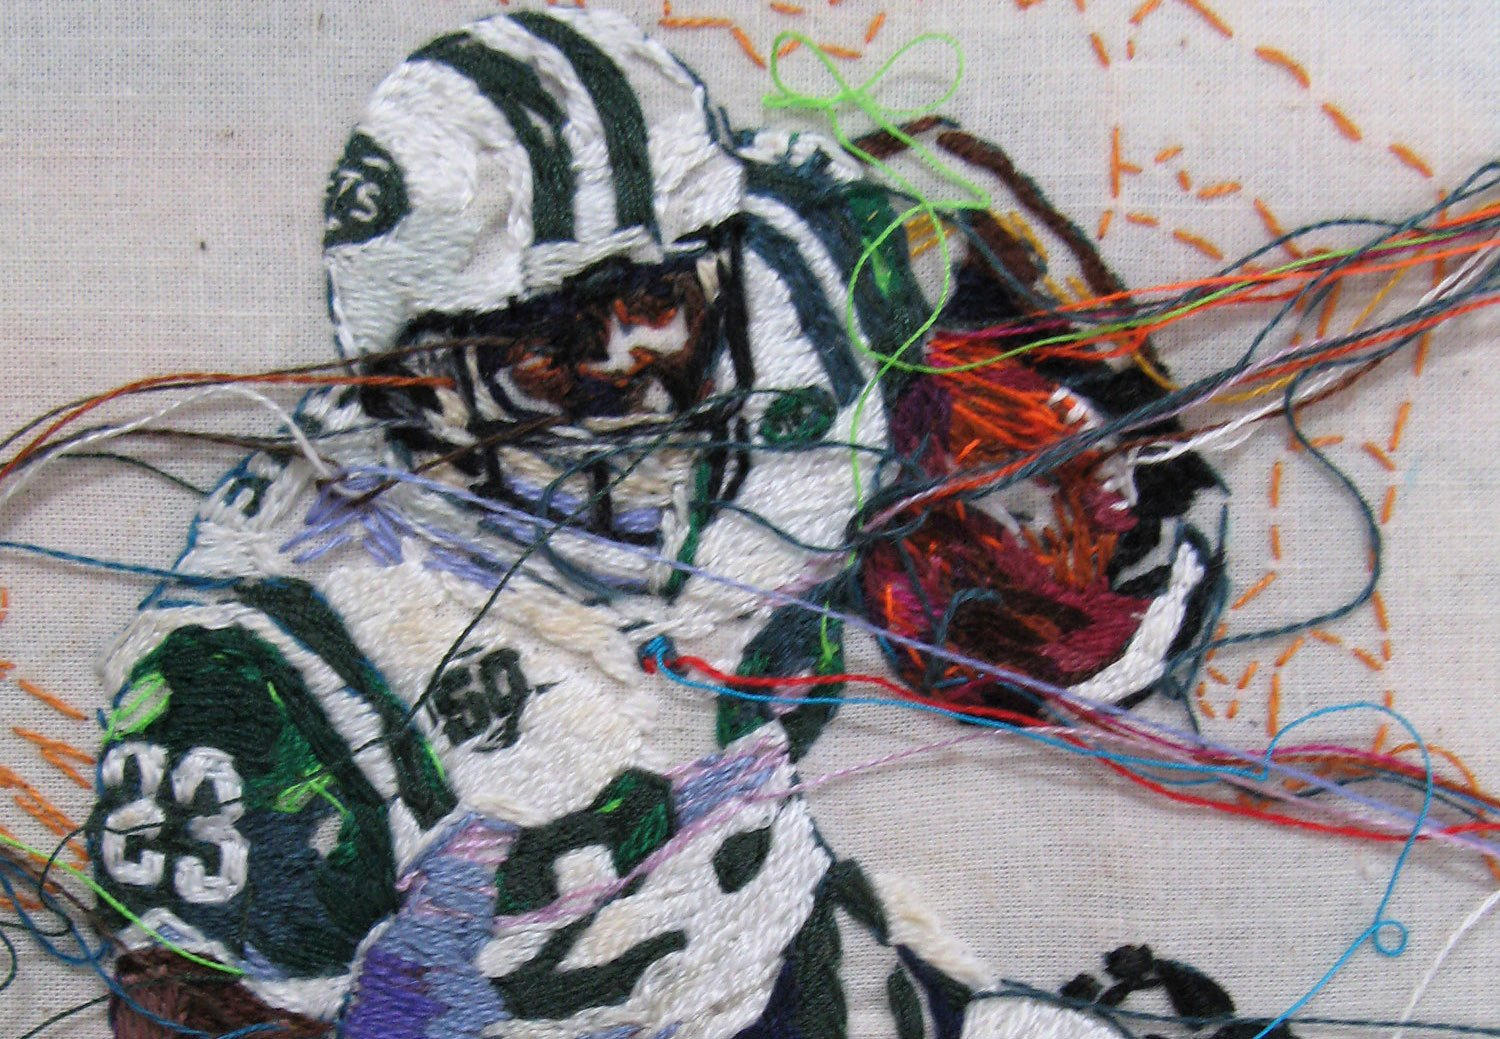 """A detail of Shonn Greene by artist Lauren DiCioccio, which shows the intricate embroidered patterns employed in her work. Image courtesy of the artist and the Jack Fischer Gallery.  Photo 1 of 3 in YBCA's """"Remember the Times"""""""